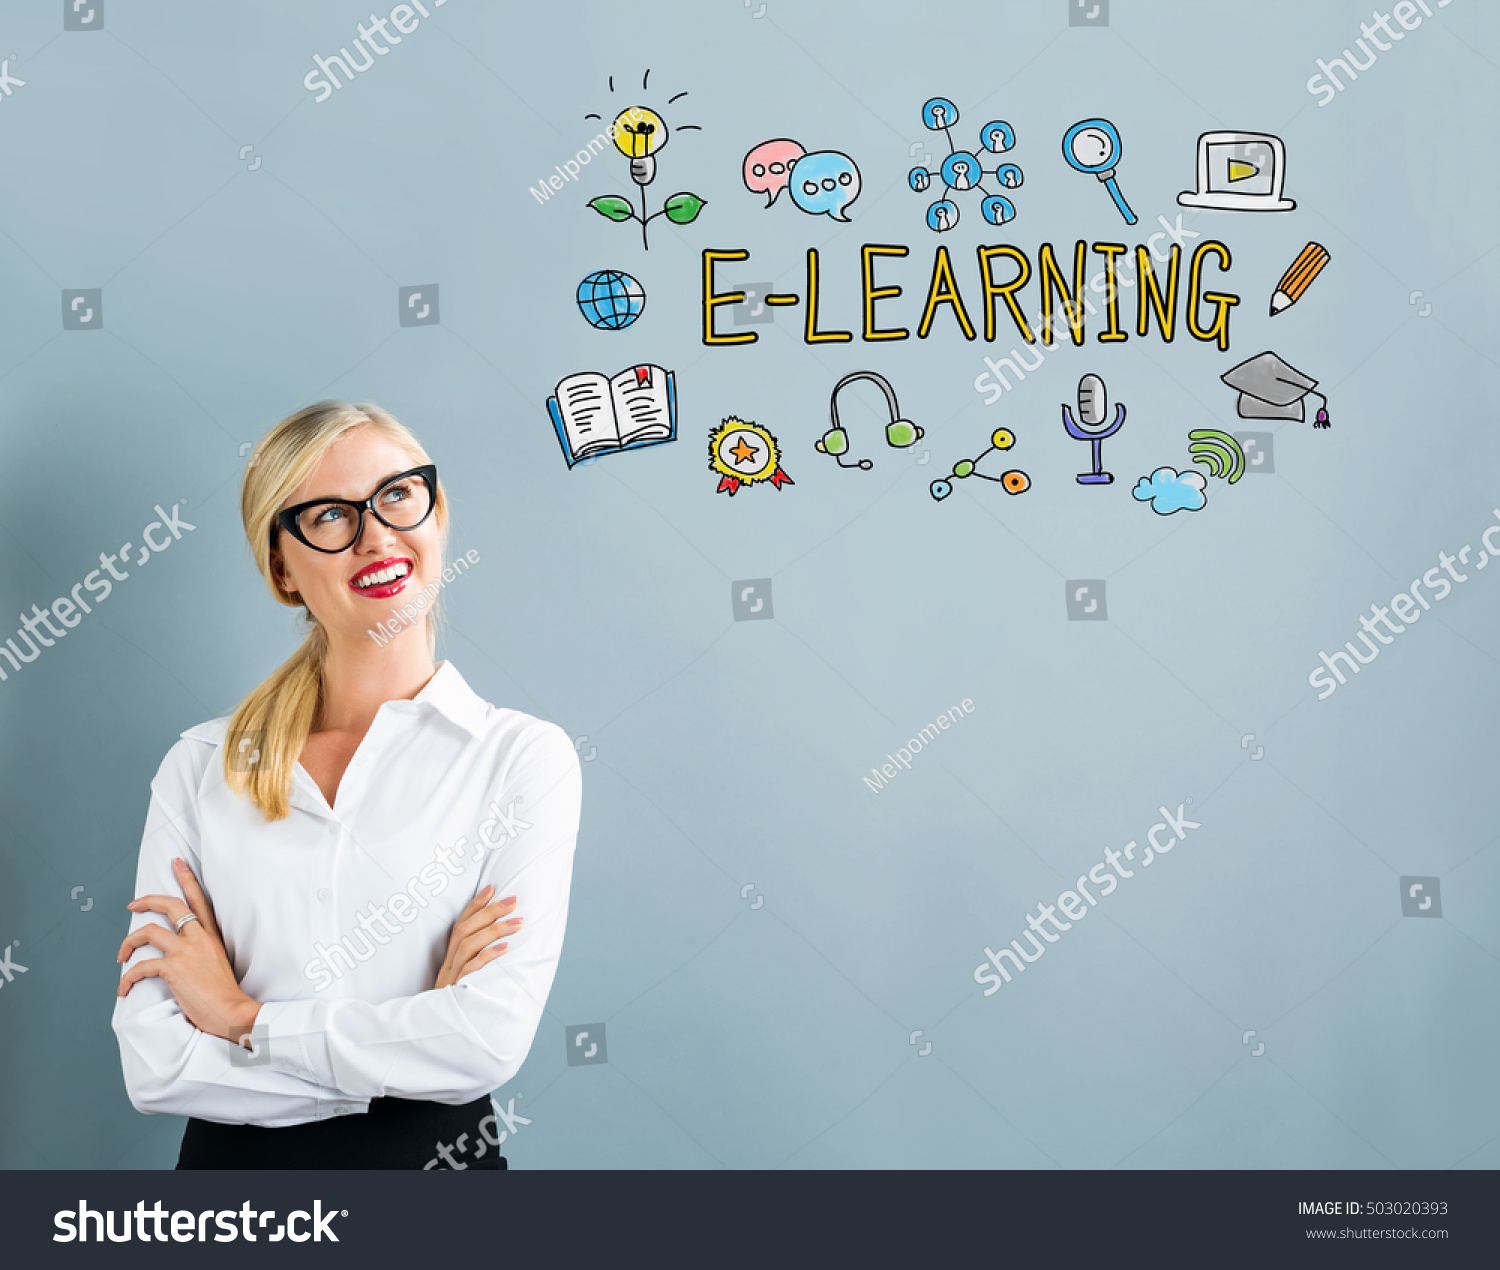 E-Learning text with business woman on a gray background #503020393